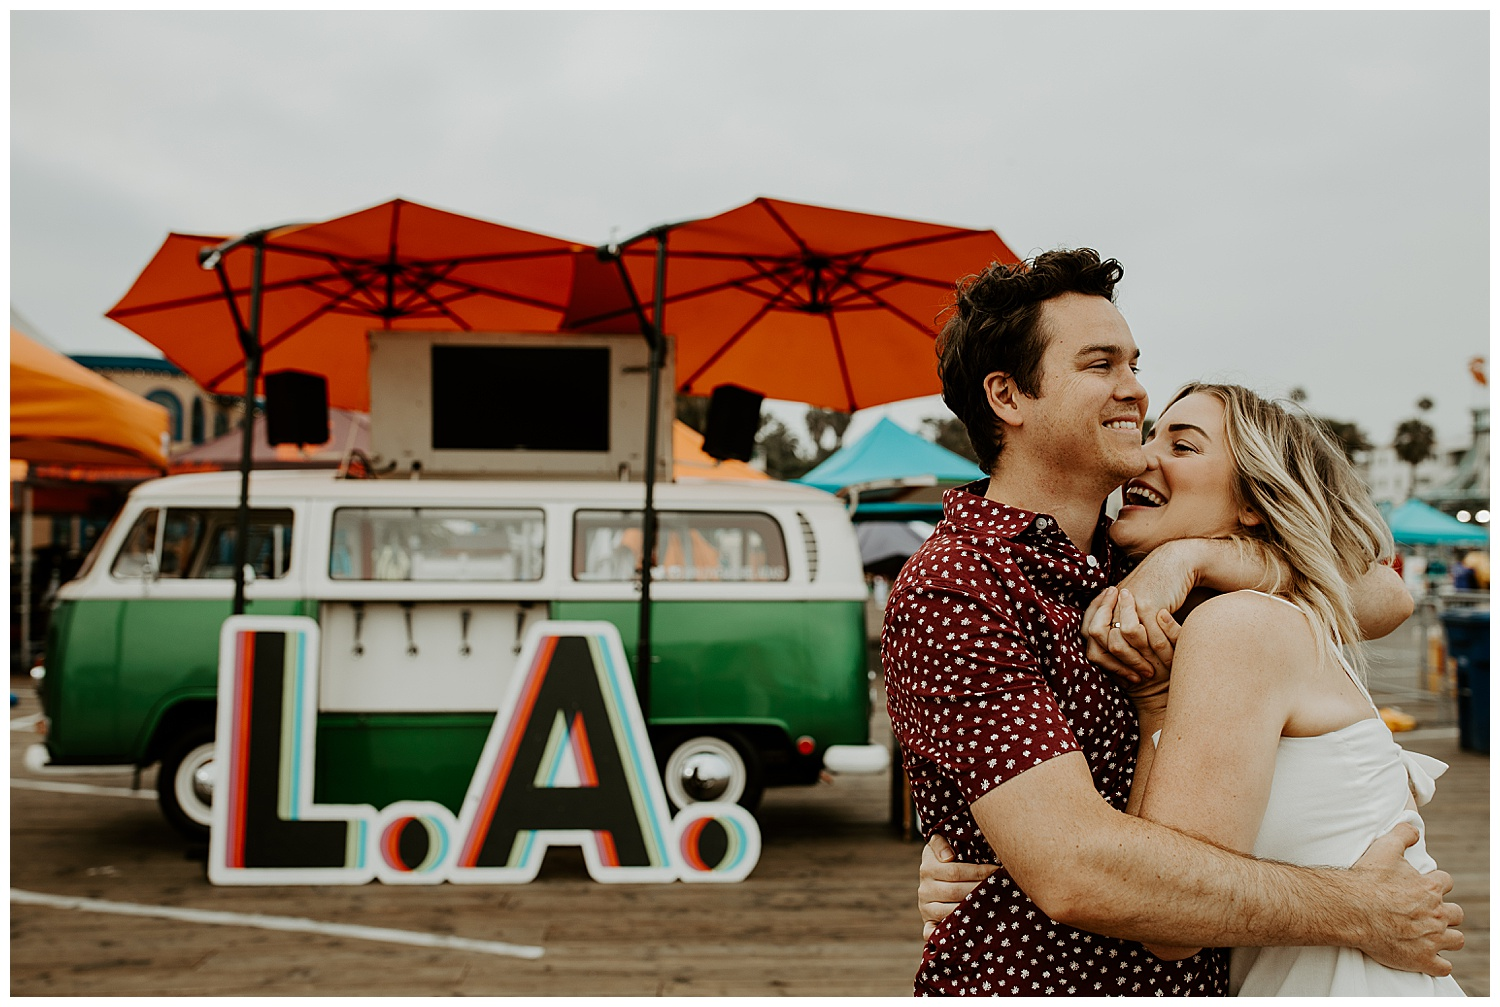 Laken-Mackenzie-Photography-Santa-Monica-Pier-Couples-Session-Kami-TJ-Malibu-Couples-Session03.jpg